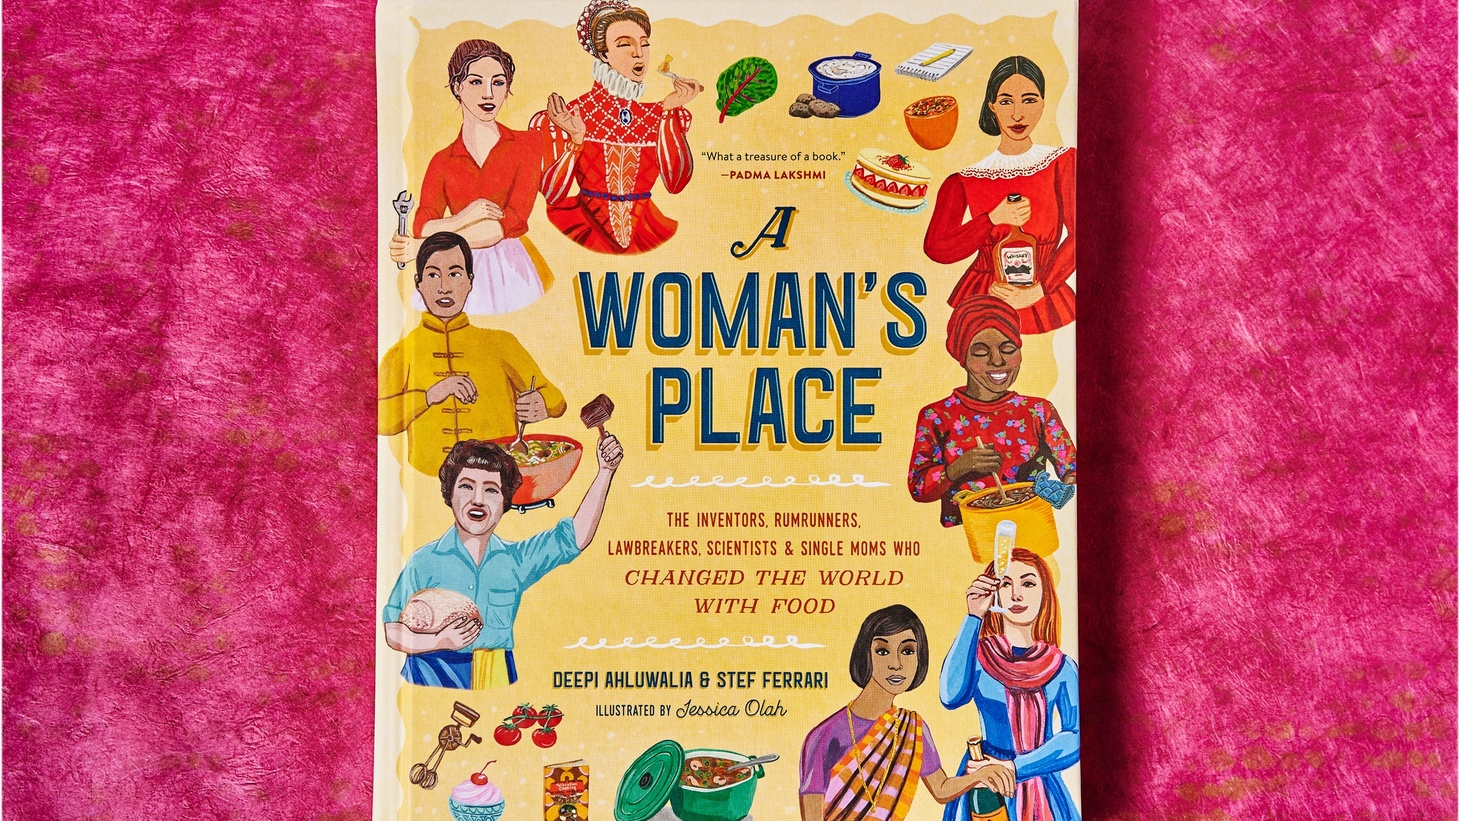 """A Woman's Place: The Inventors, Rumrunners, Lawbreakers, Scientists, and Single Moms Who Changed the World with Food."" by Deepi Ahluwalia and Stef Ferrari."